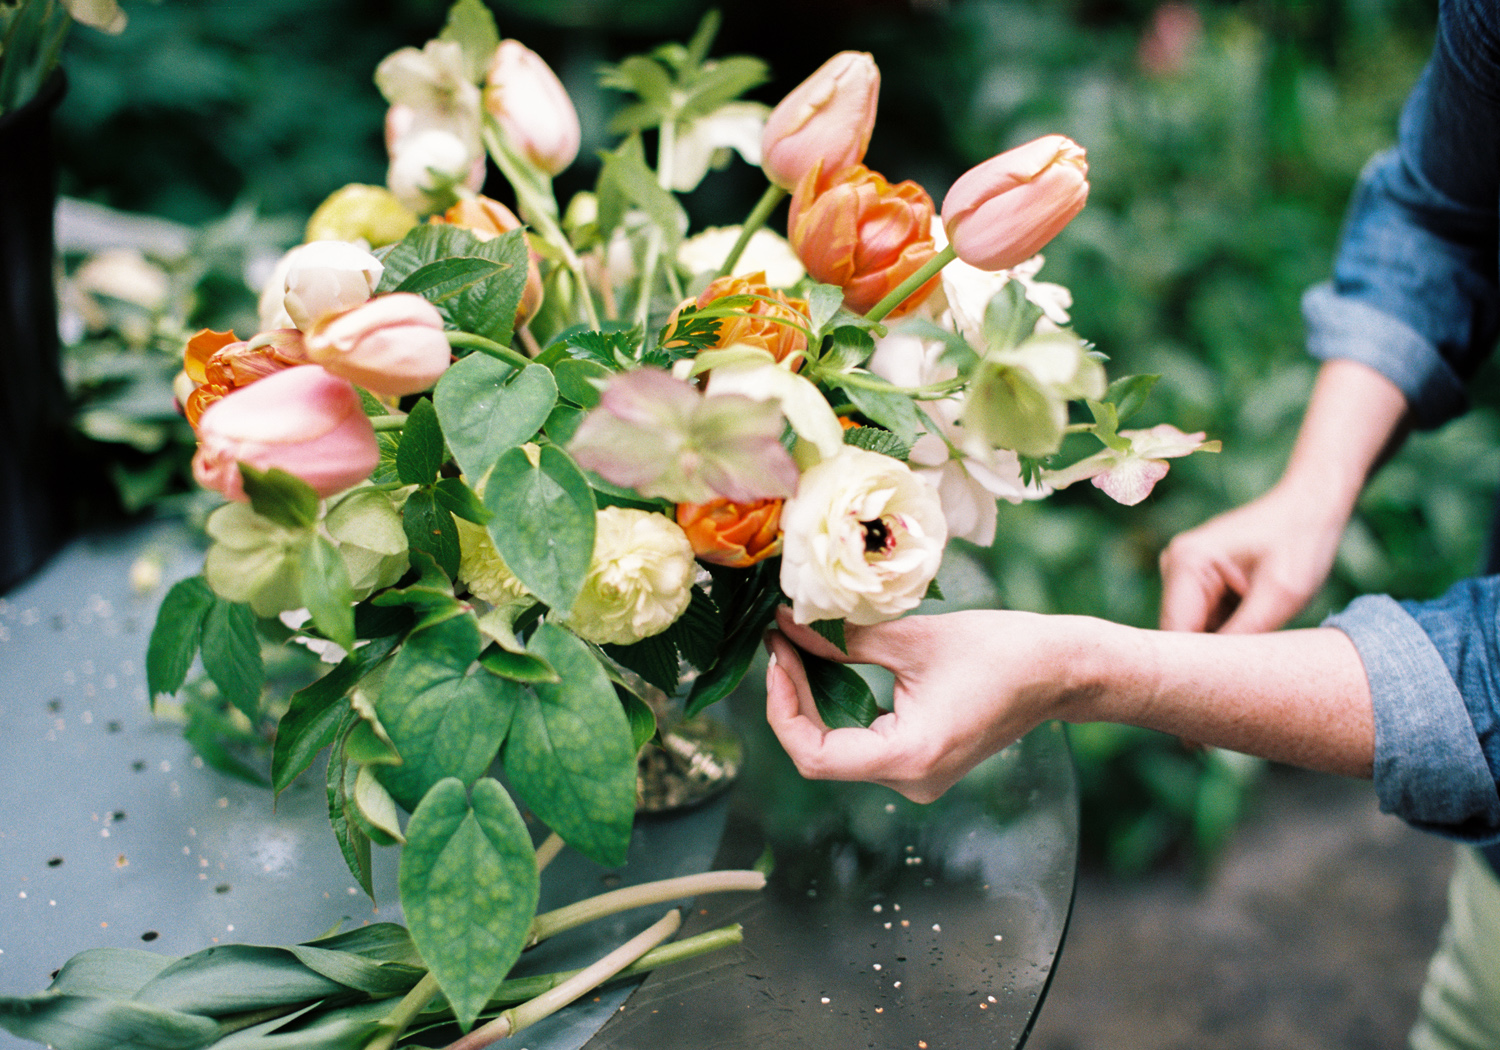 seattle florist smashing petals by keita horn.jpg